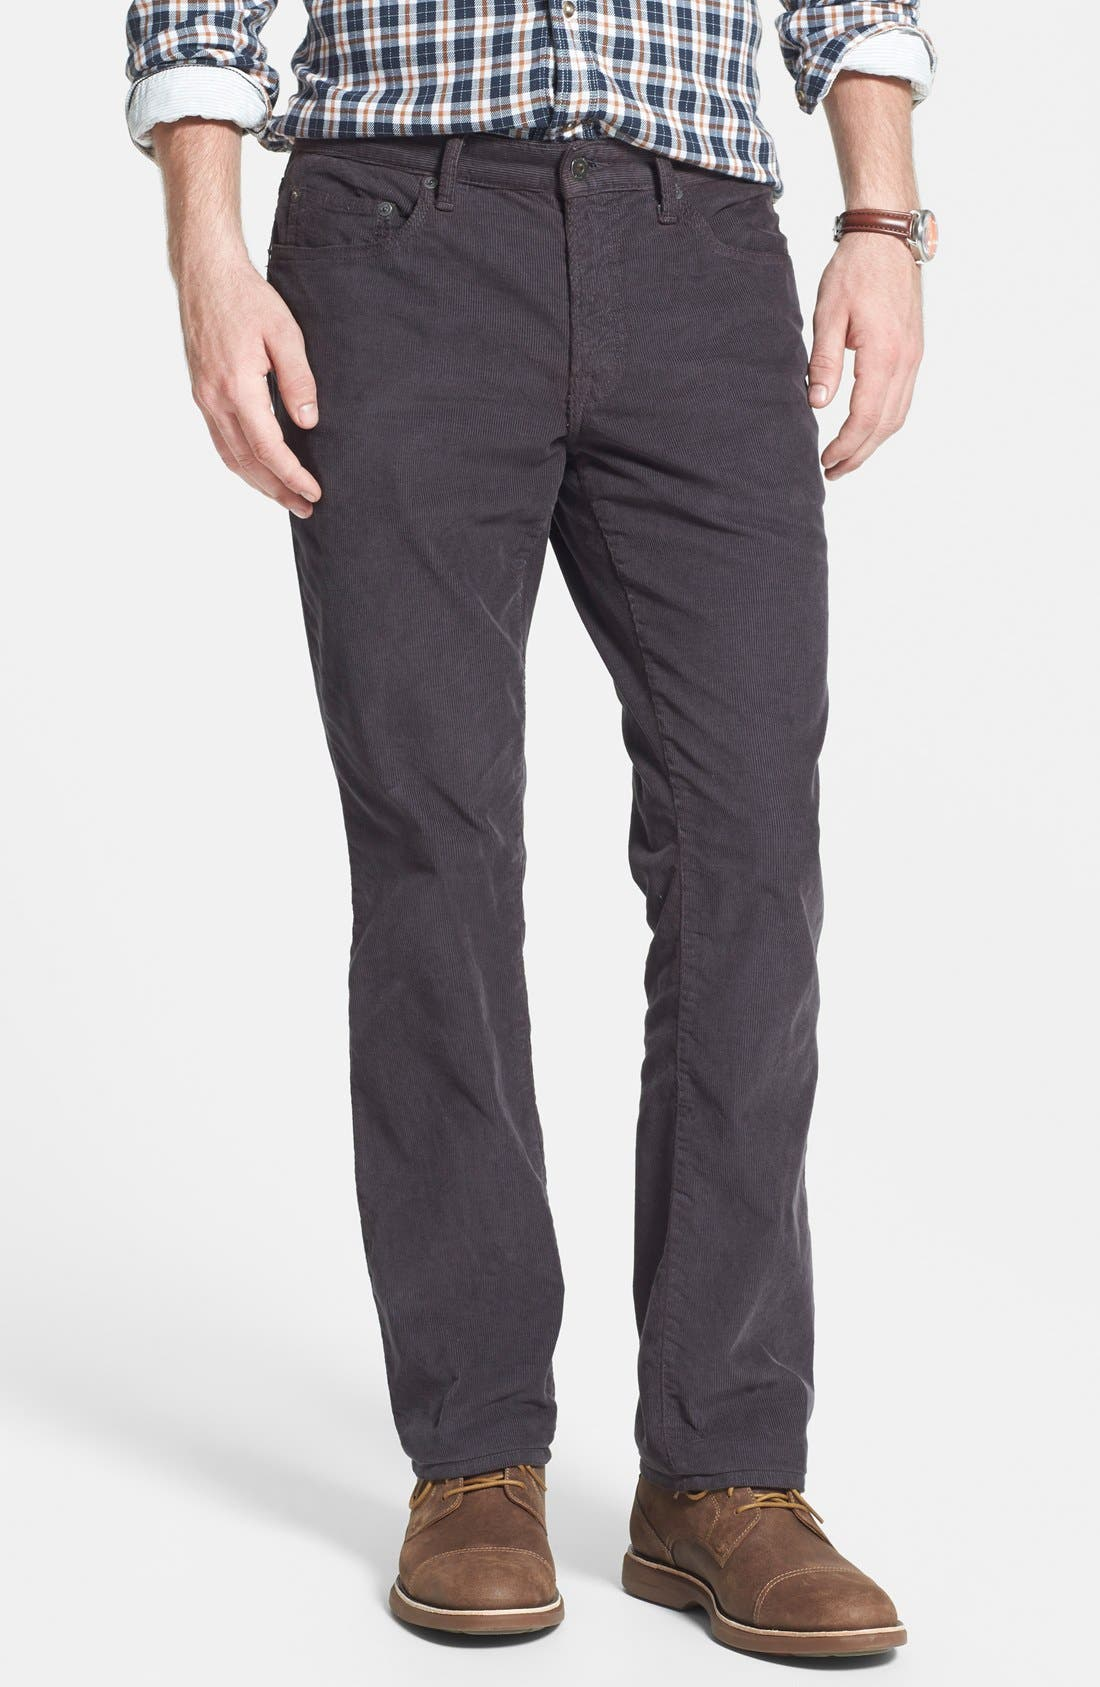 BONOBOS Straight Leg Five-Pocket Corduroy Pants, Main, color, 020